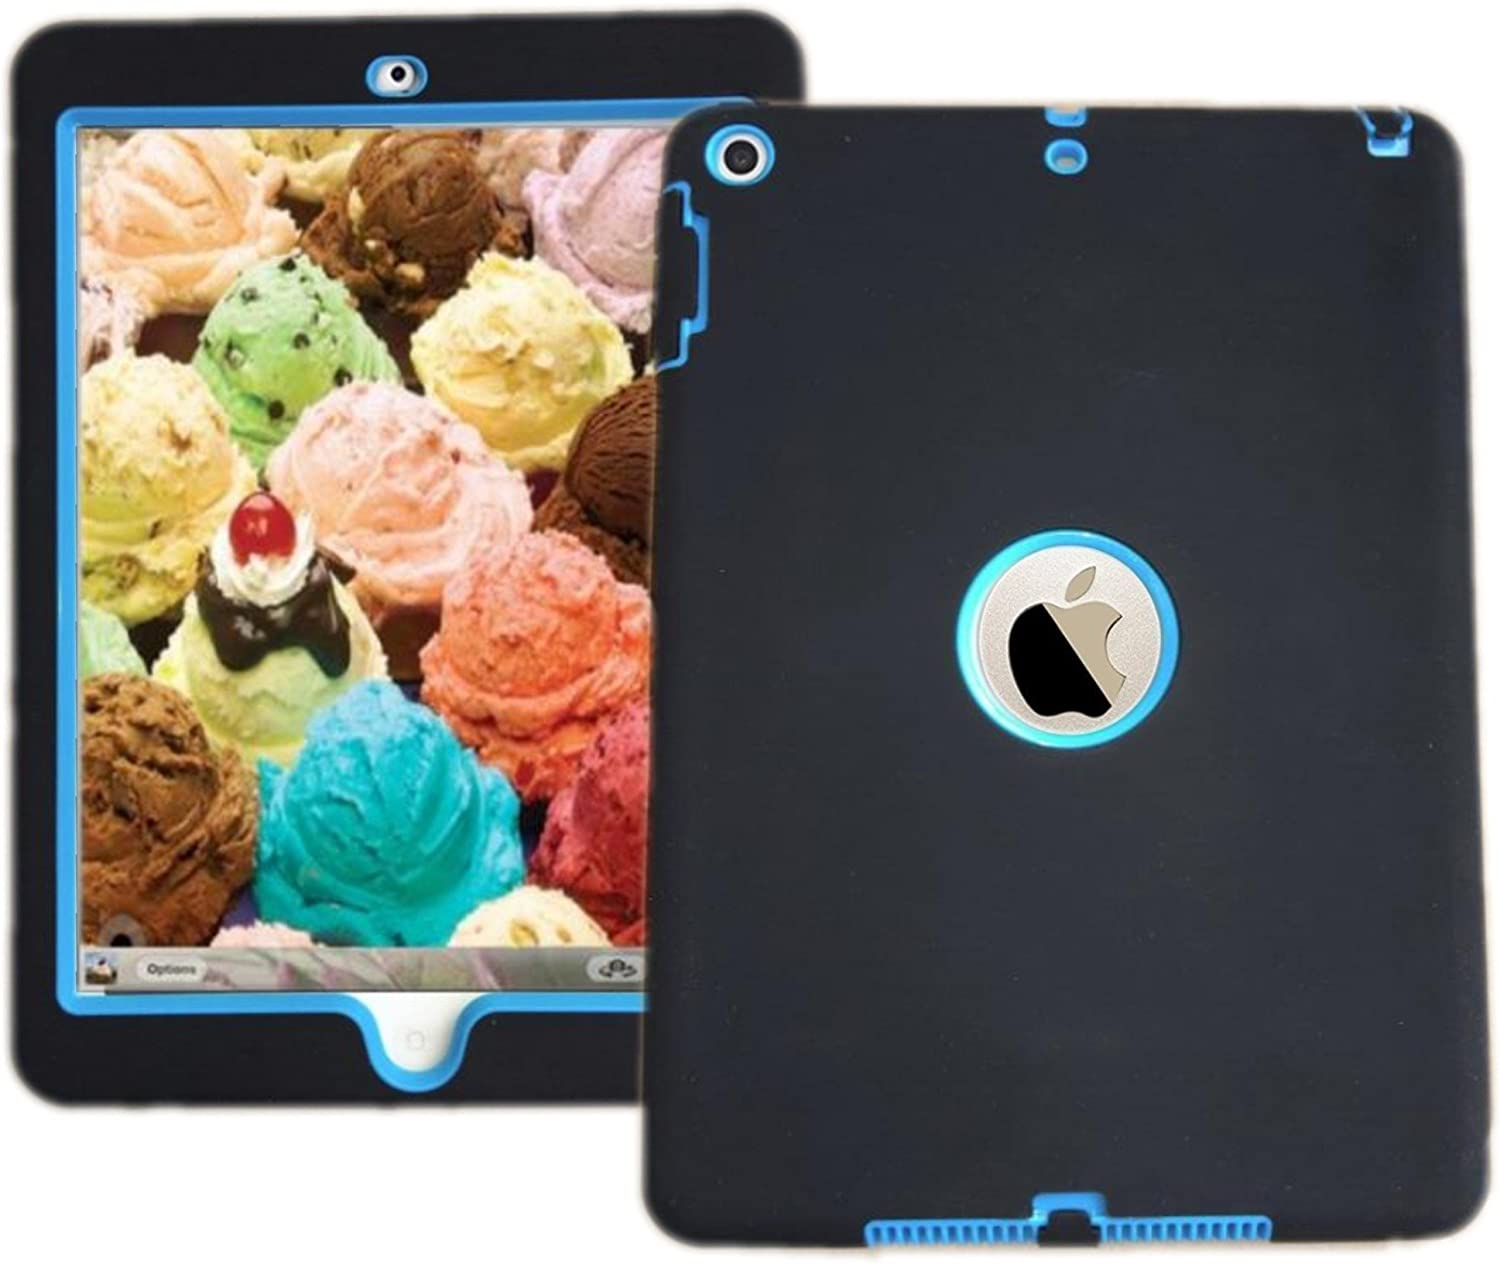 IPad Shockproof Case 3 in 1 Hybrid Rubber Back Cover Shell For New iPad 9.7 inch 2017 Version Model numbers A1822 A1823 MP2G2LL/A MP2J2LL/A MPGT2LL/A MPGW2LL/A MP2F2LL/A MP2H2LL/A Black with Blue